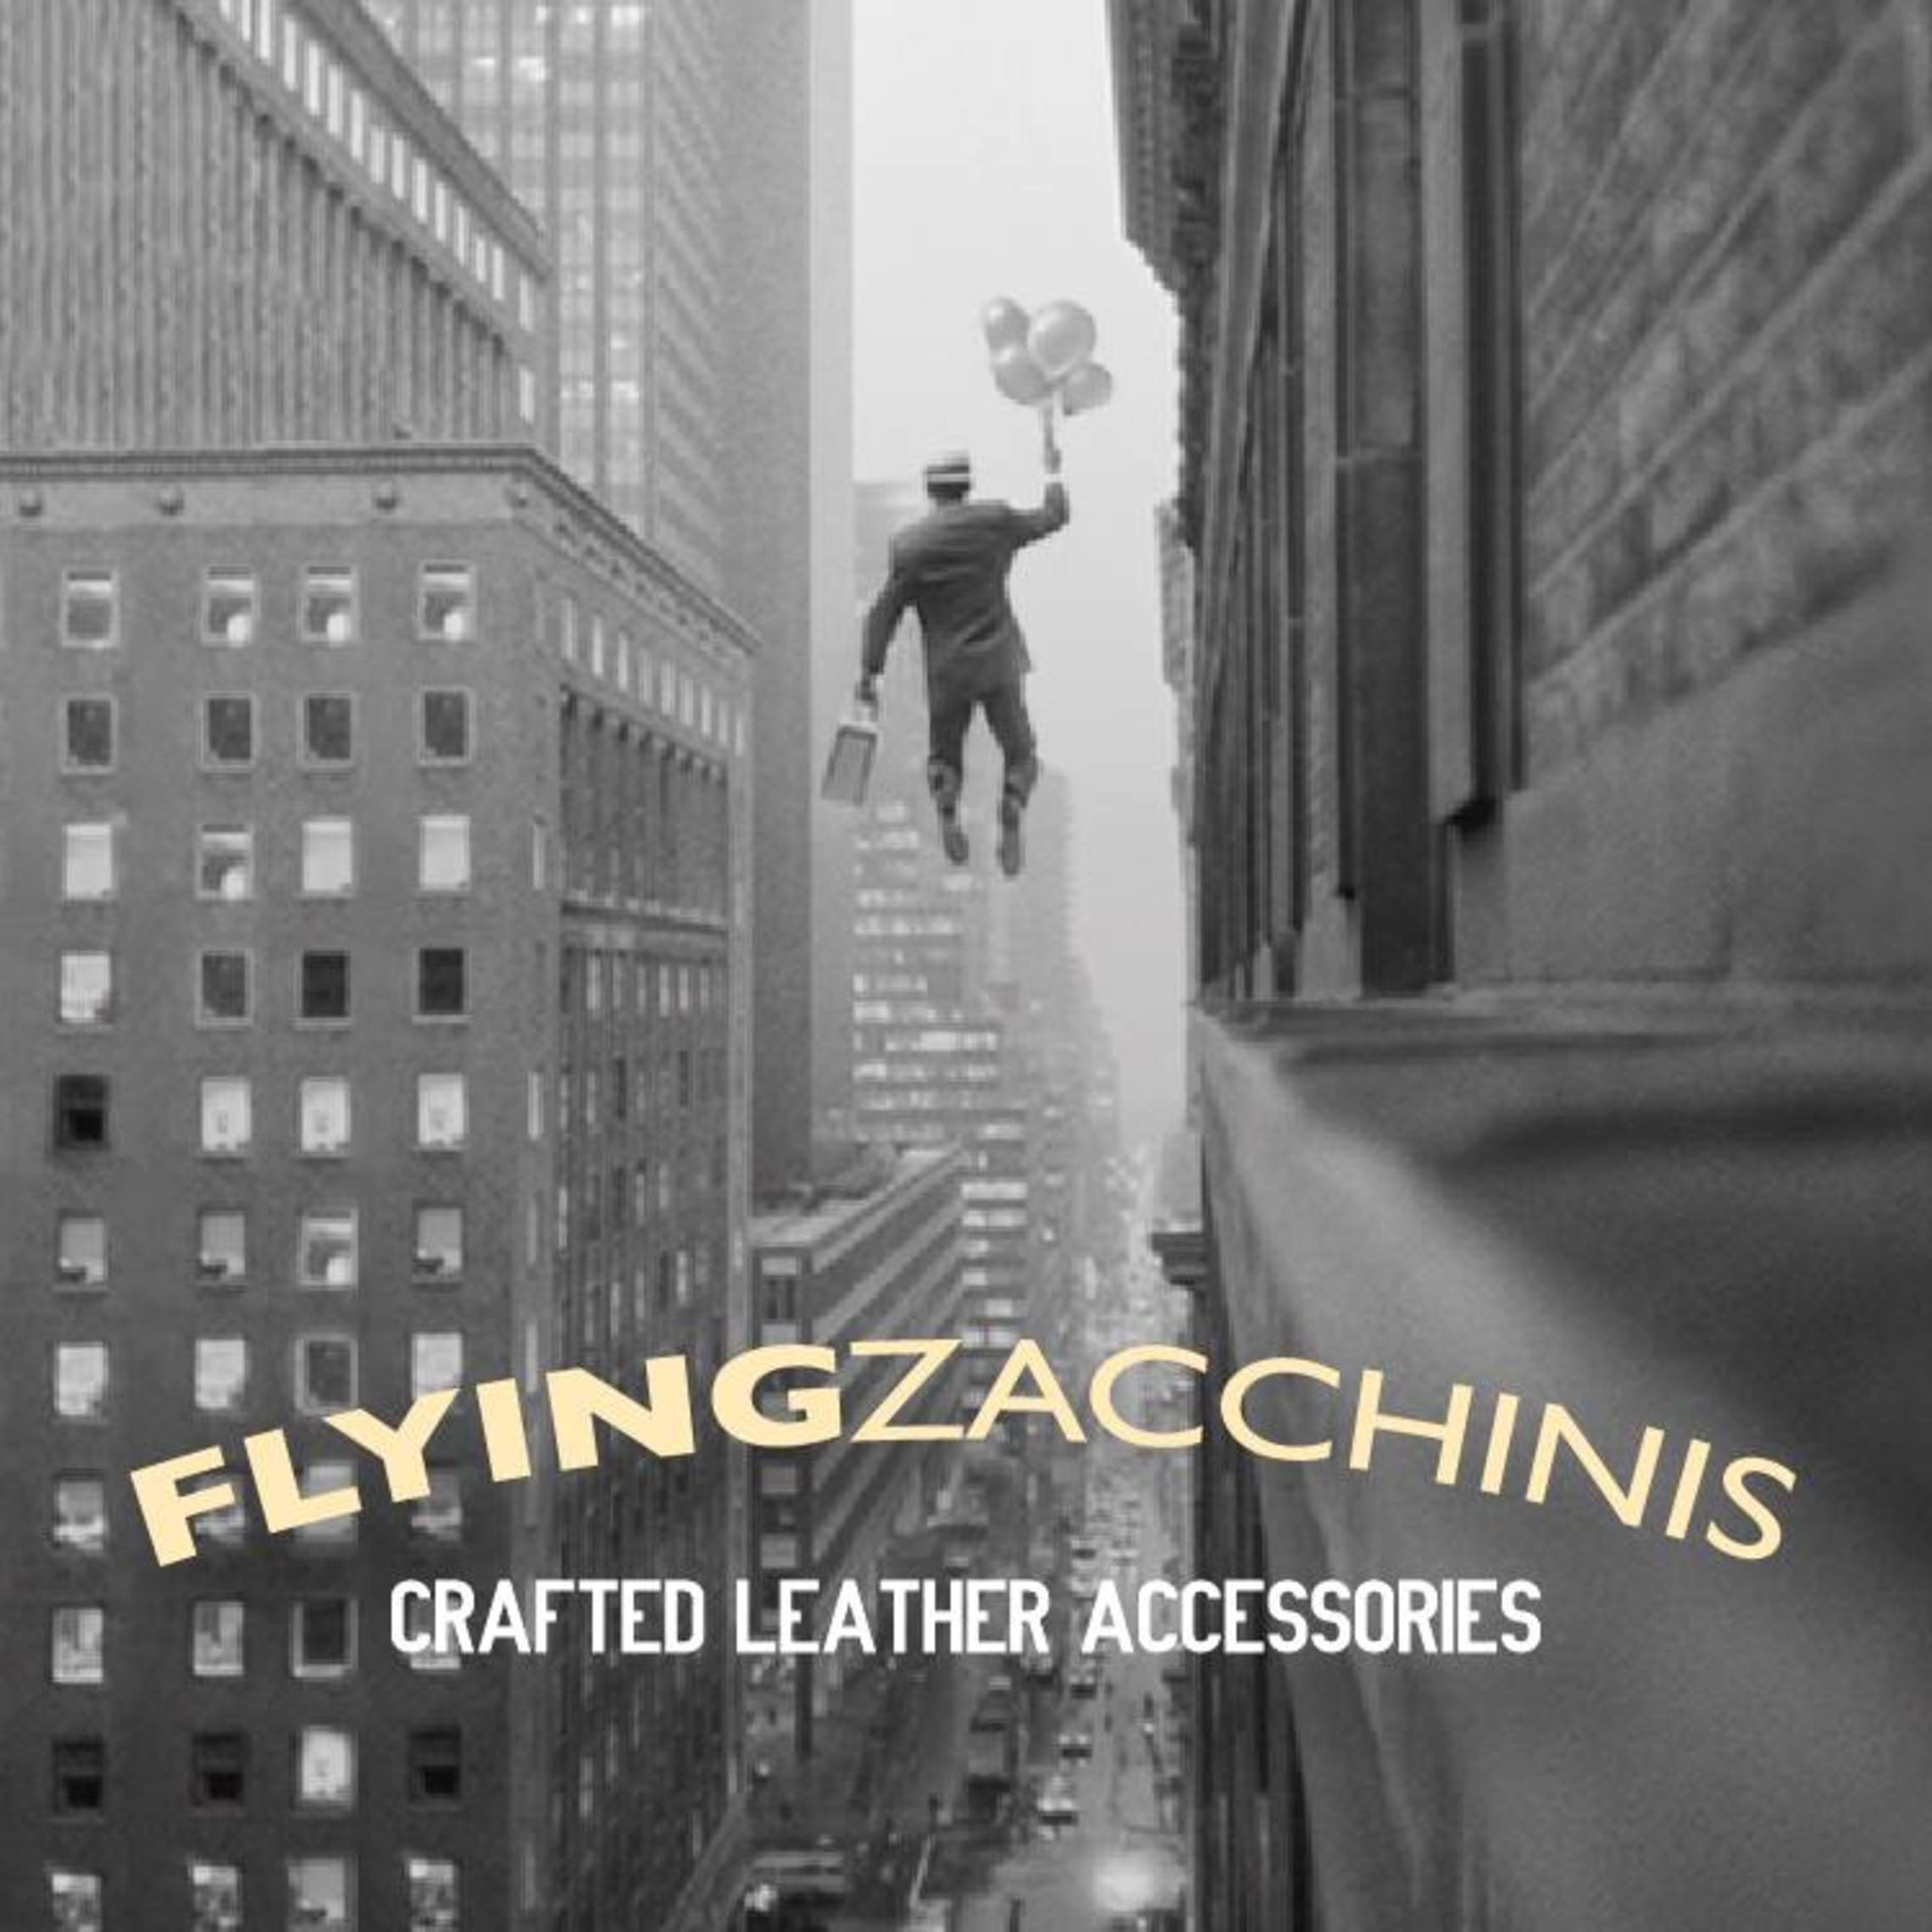 flying zacchinis- company logo